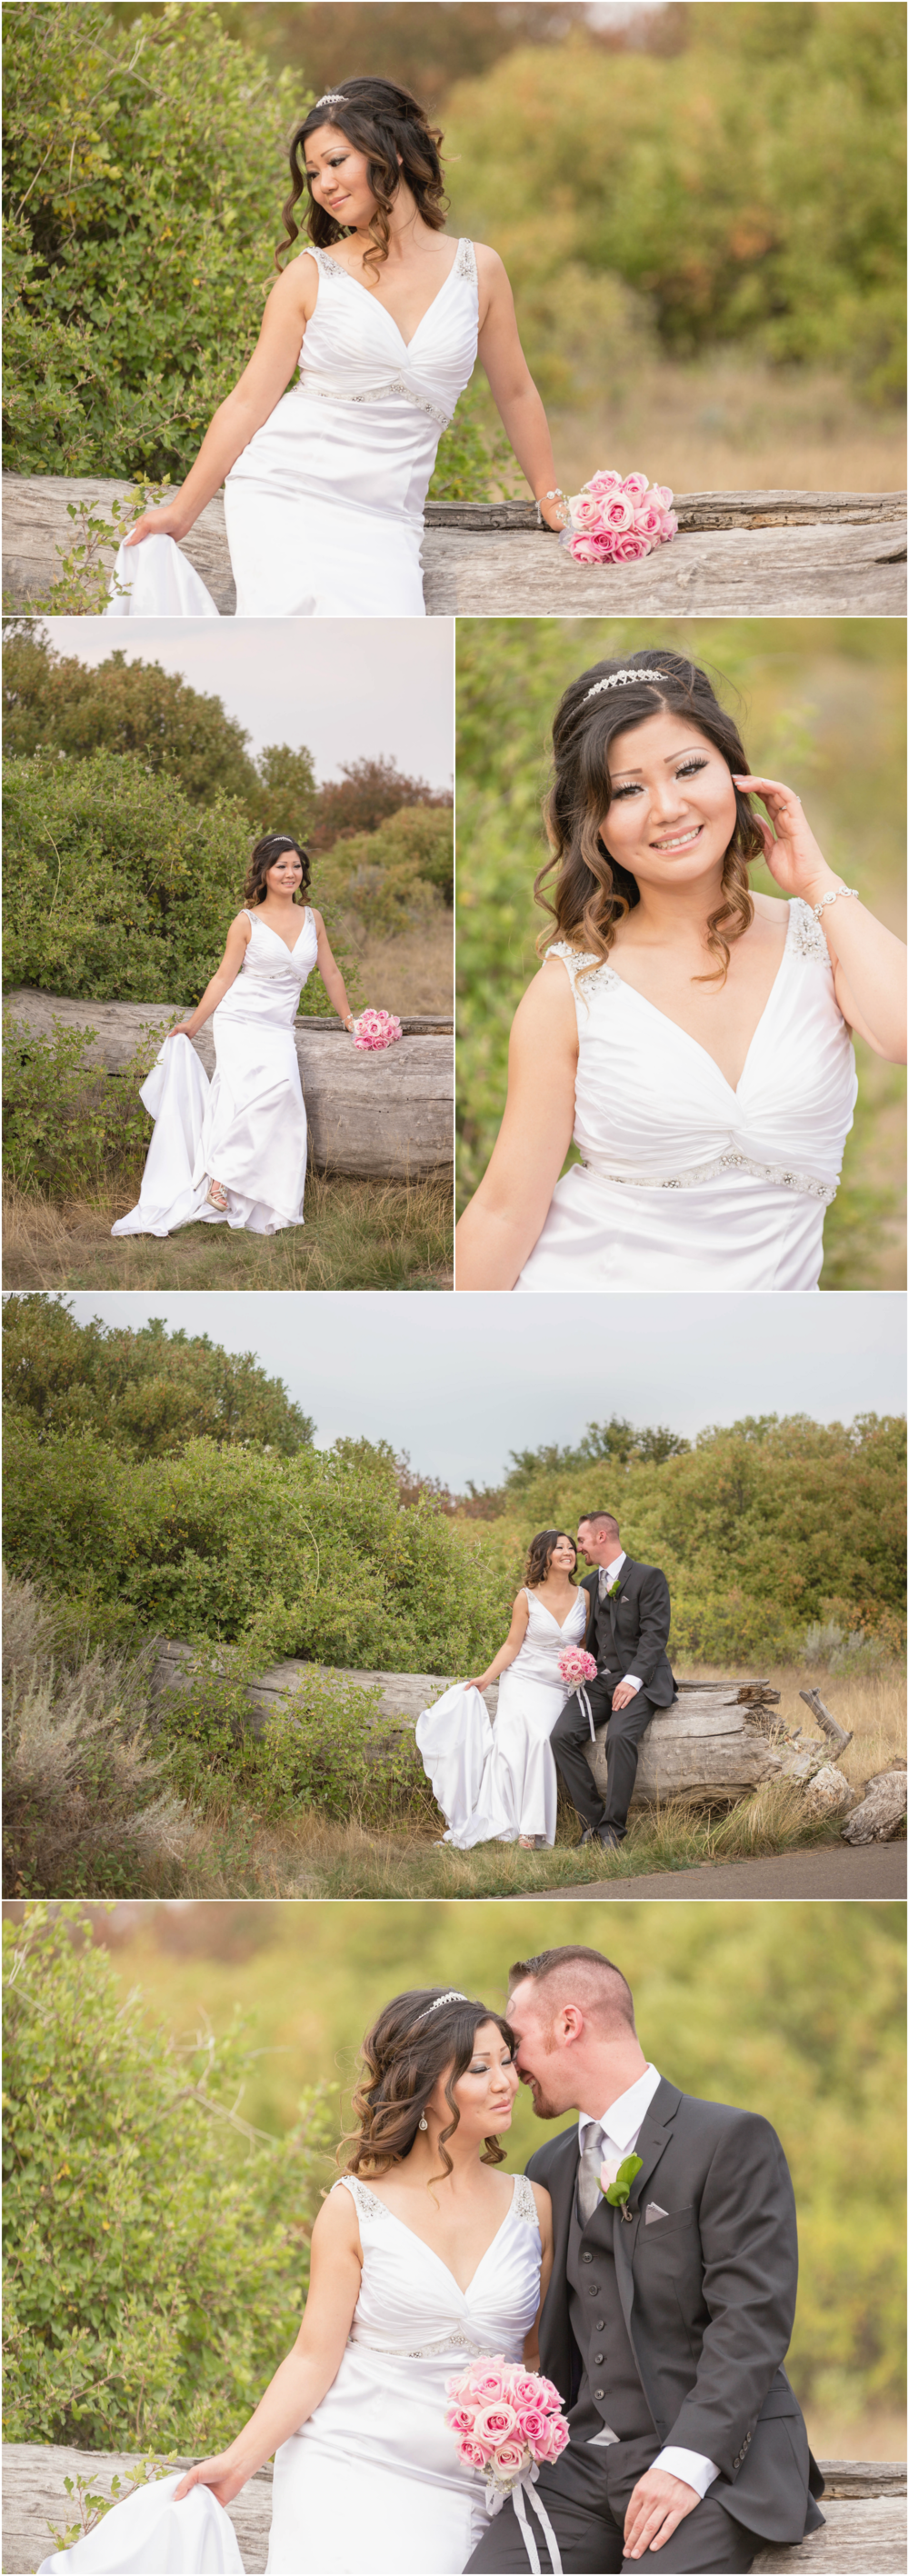 medicine-hat-golf-course-wedding_10.png